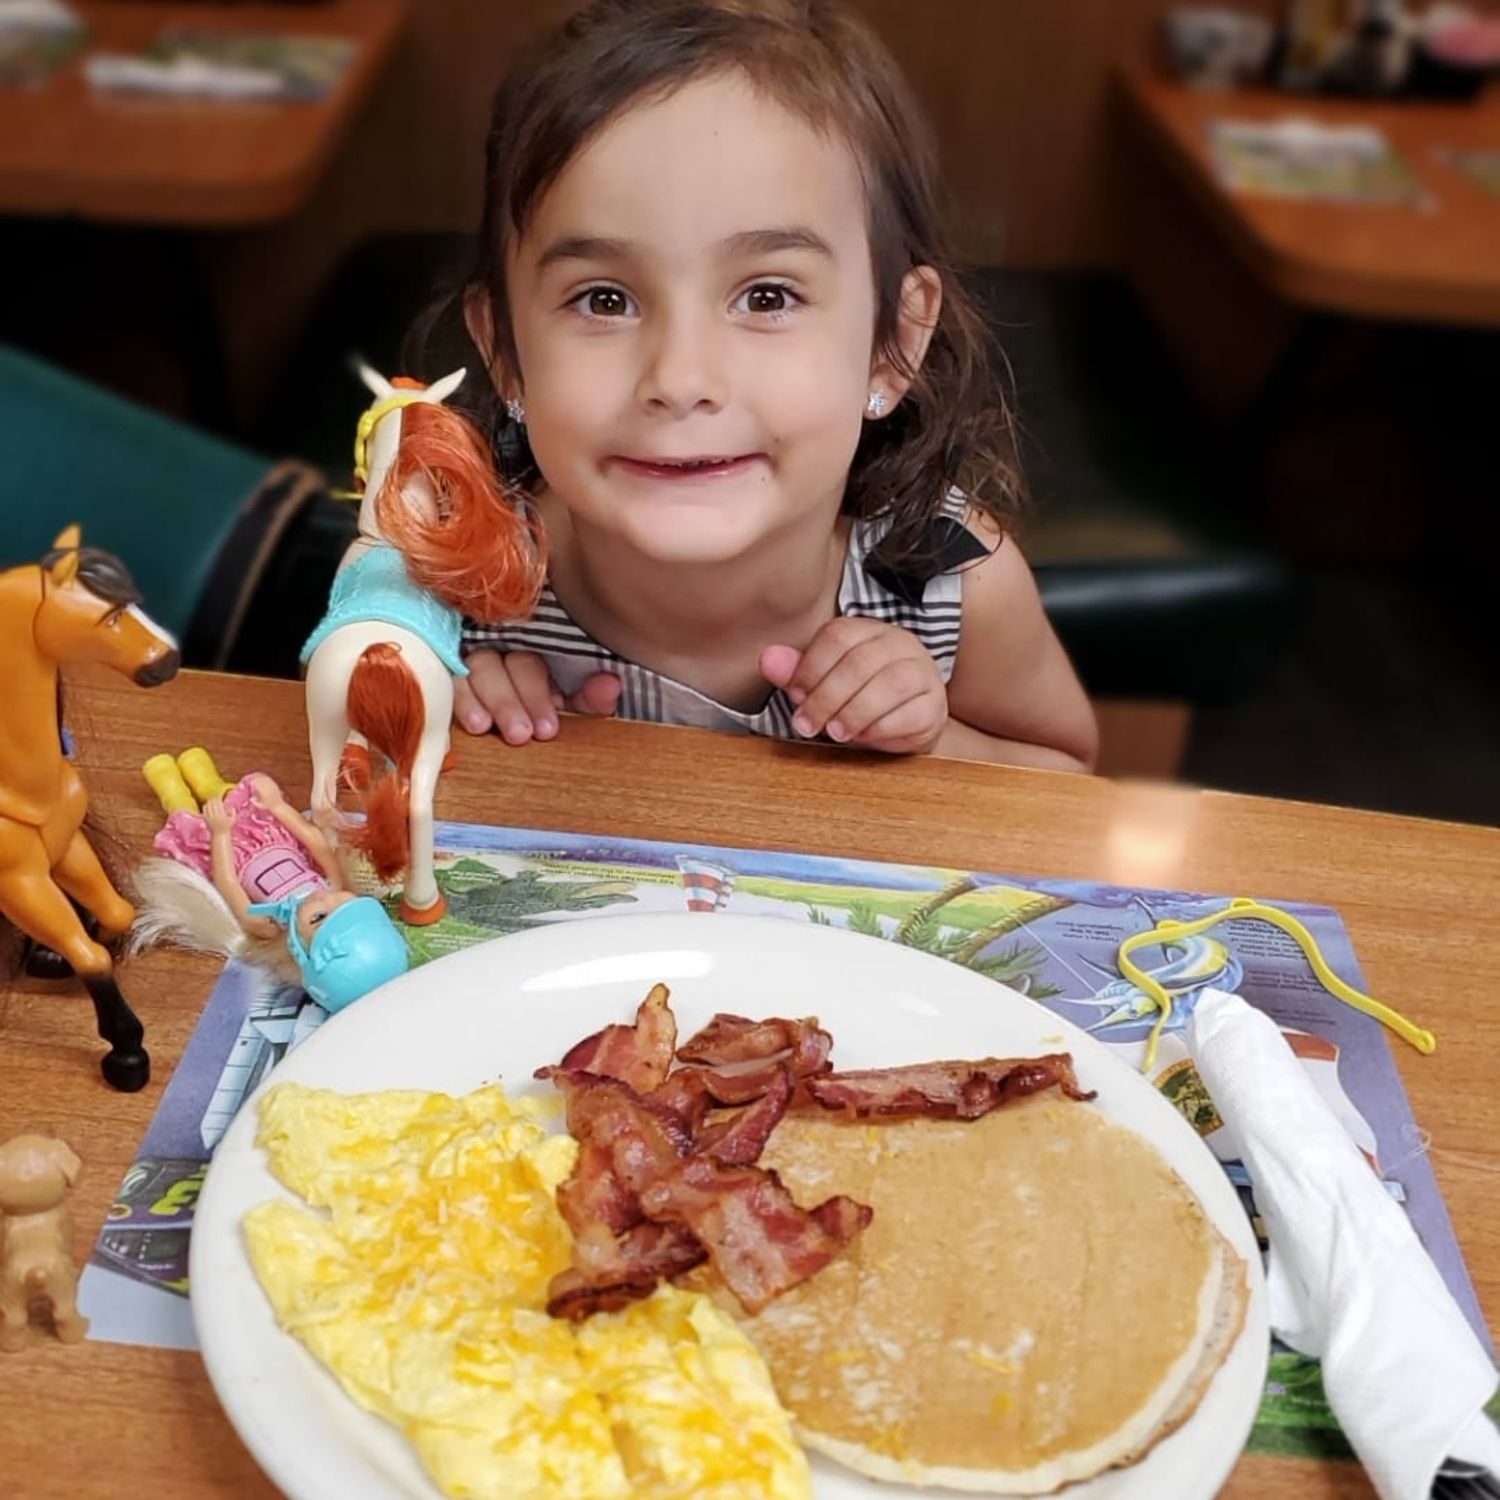 Girl posing for picture with plate of pancakes eggs and bacon